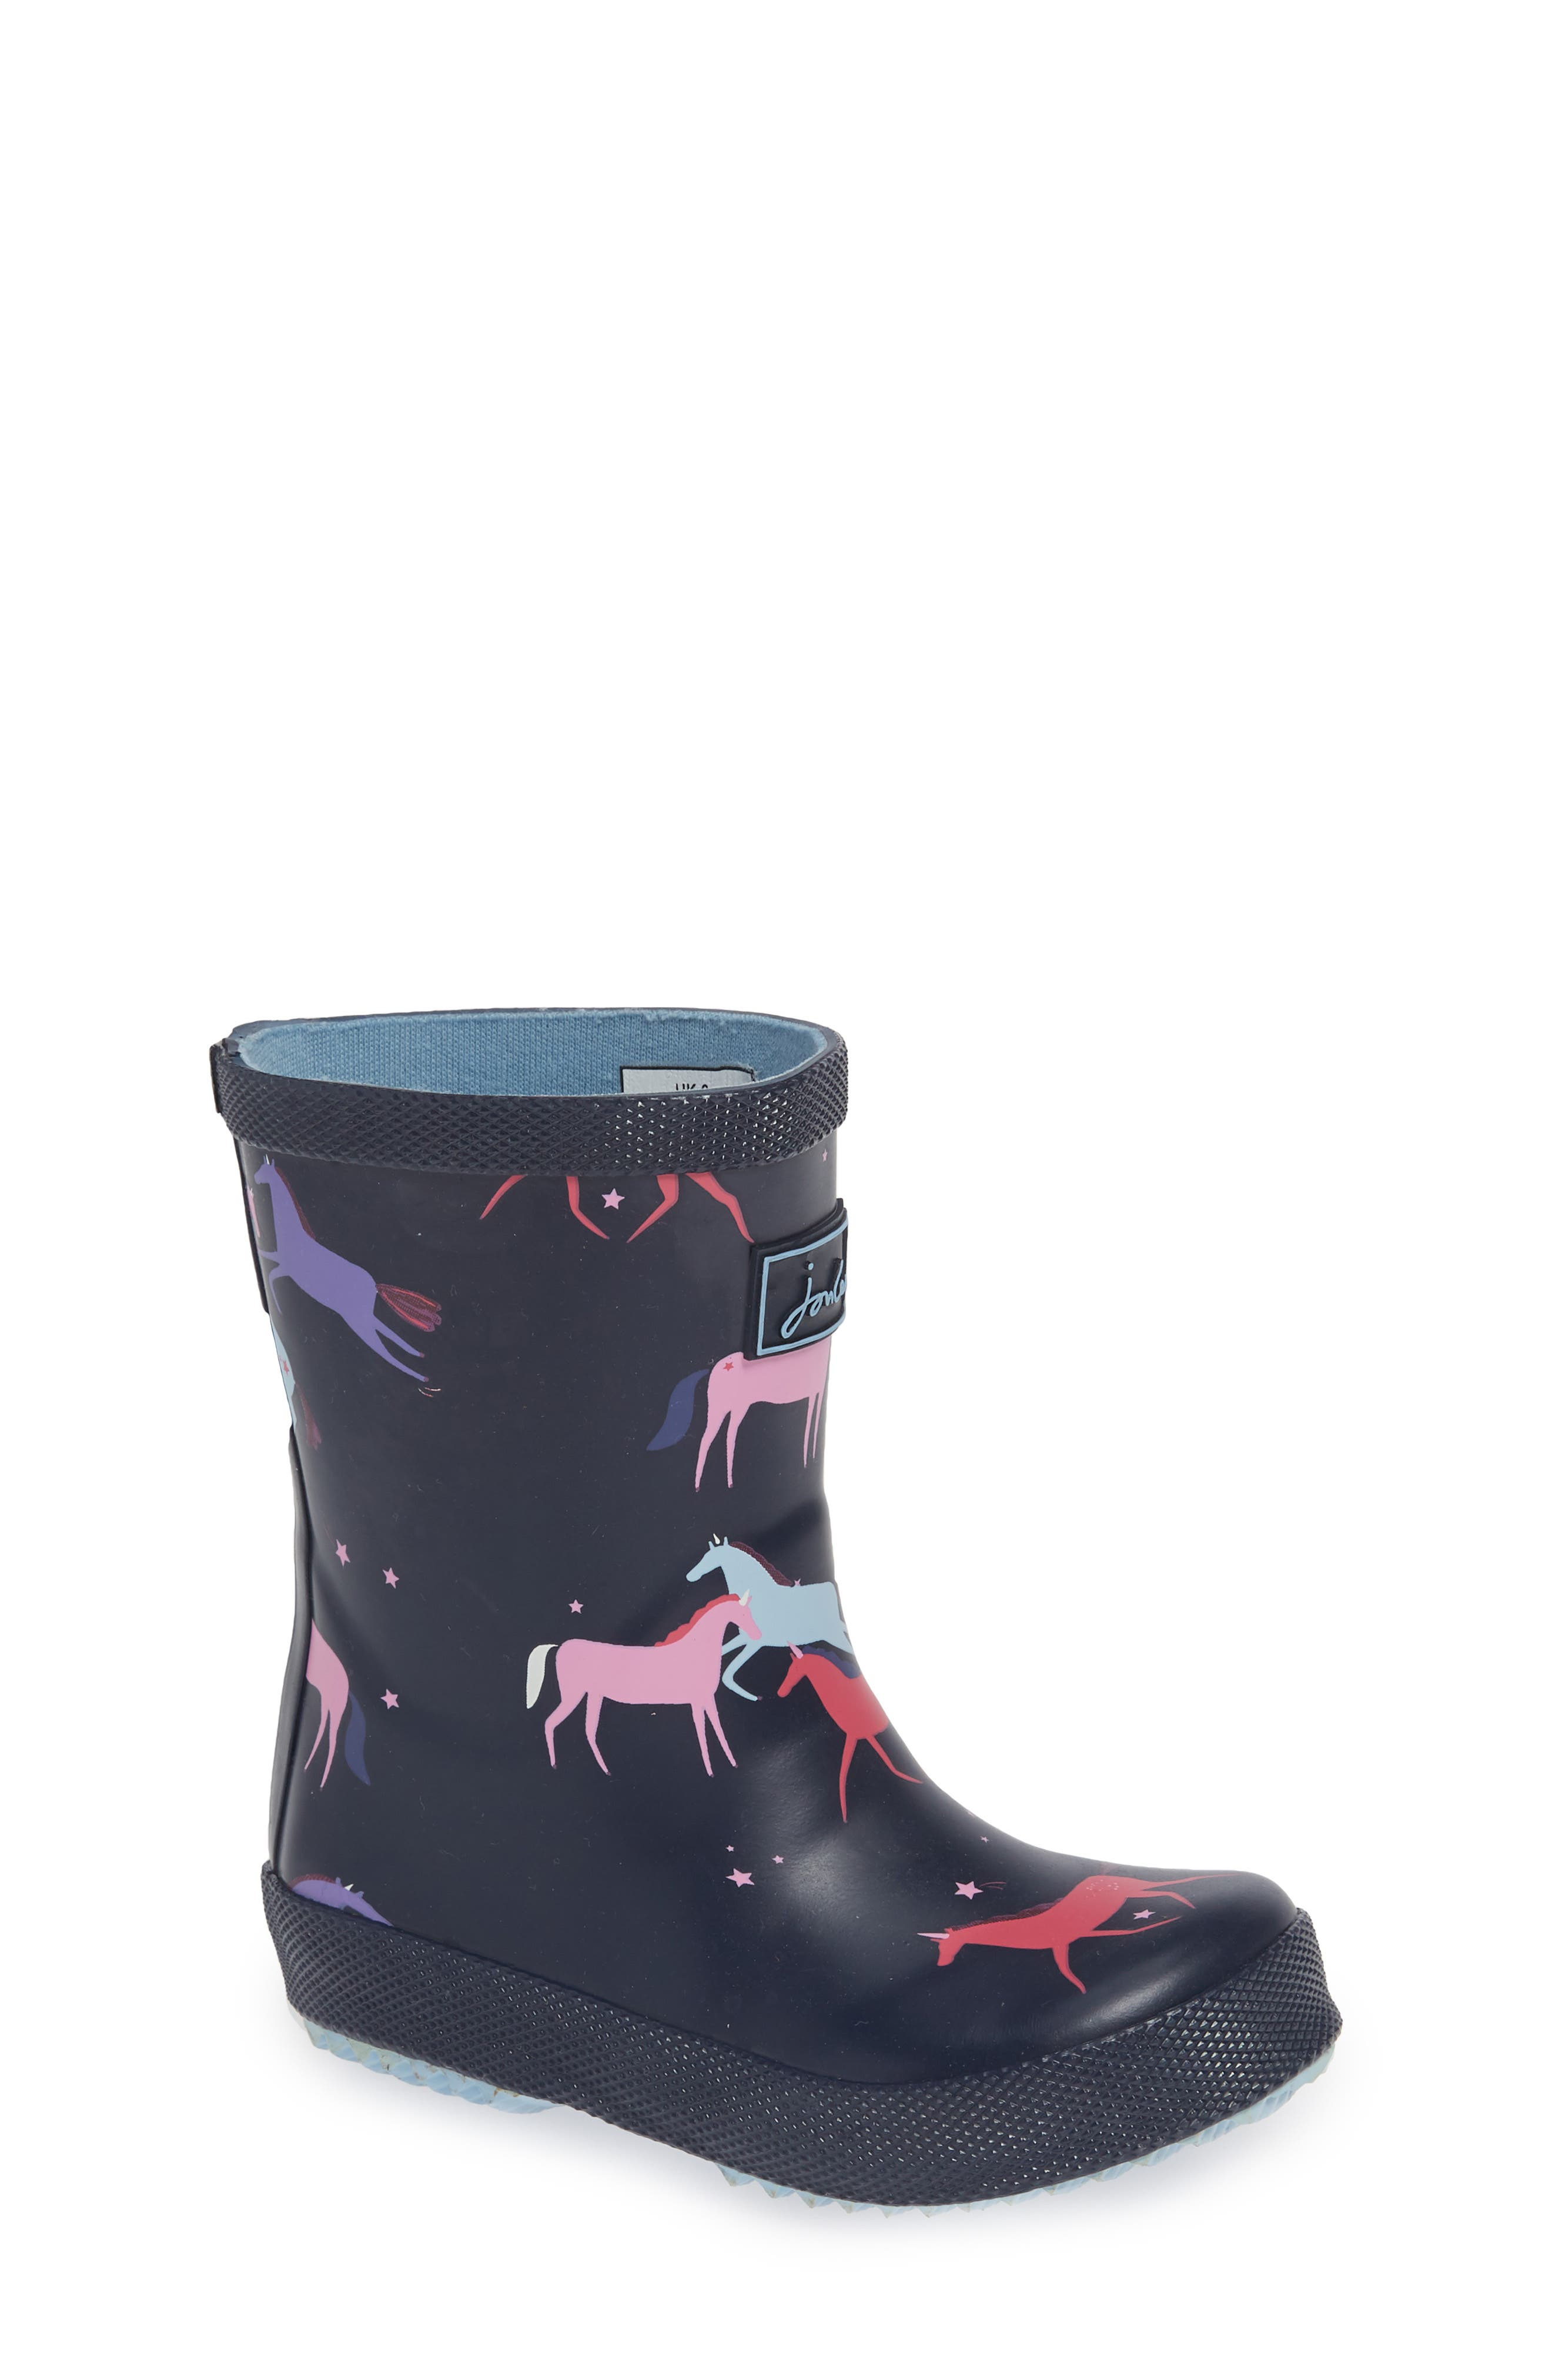 JOULES,                             Baby Welly Print Waterproof Boot,                             Main thumbnail 1, color,                             NAVY MAGICAL UNICORN